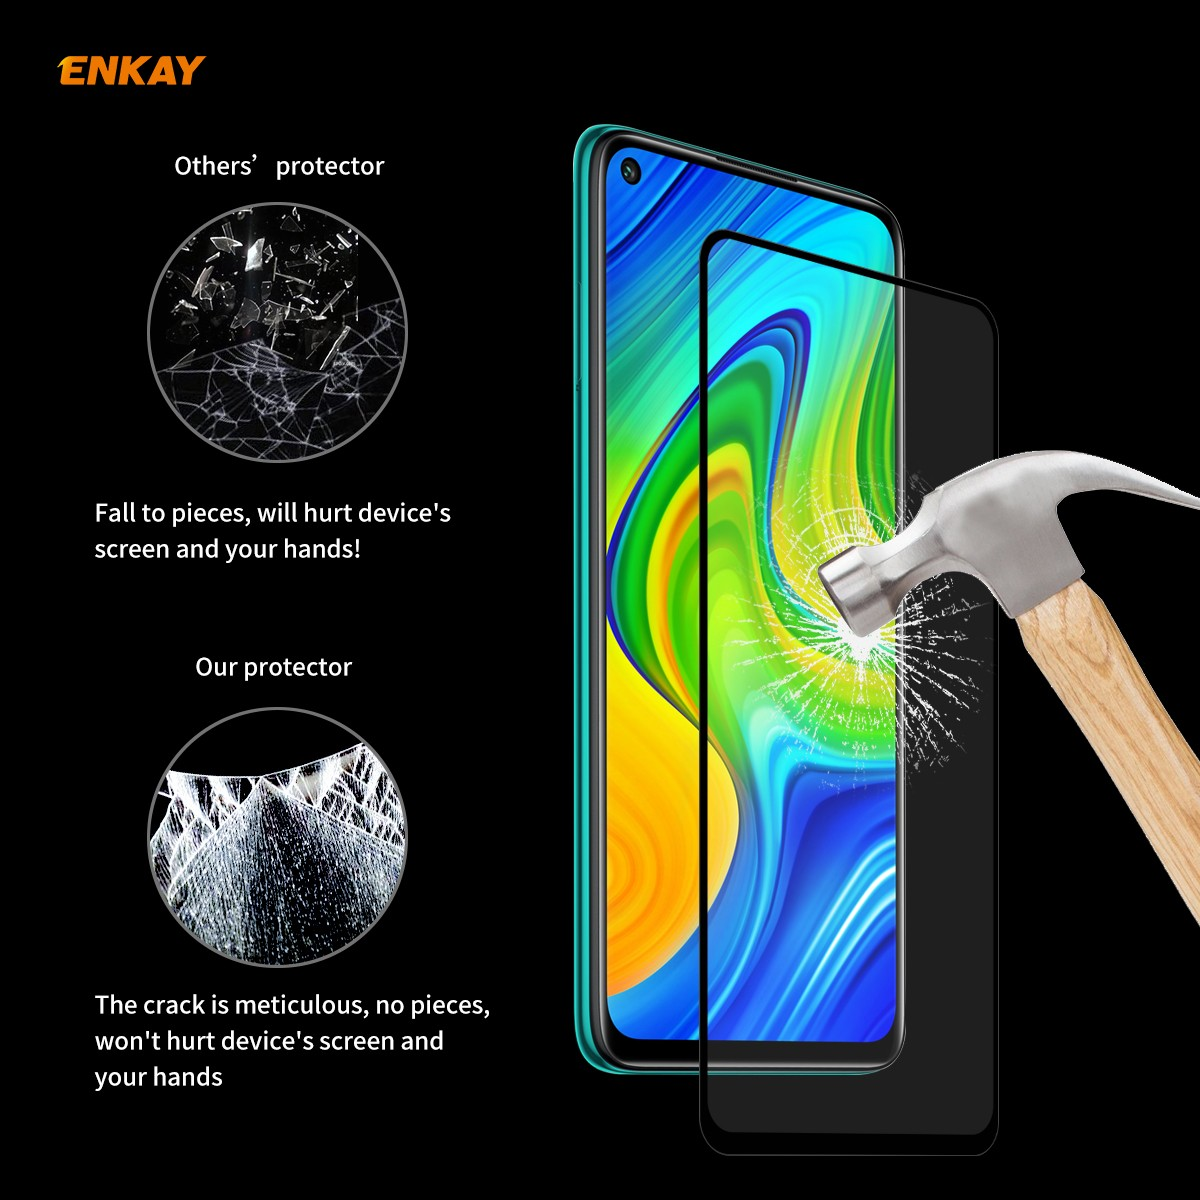 Enkay Straw Hat Prince Screen Protector for Huawei P40 Lite/Huawei P40/Redmi 9/9A/9C/Redmi 10X 5G/Xiaomi 10 Lite/Redmi 10X 4G/Redmi Note 9 5PCS - Black for Redmi 10X 4G / Redmi Note 9